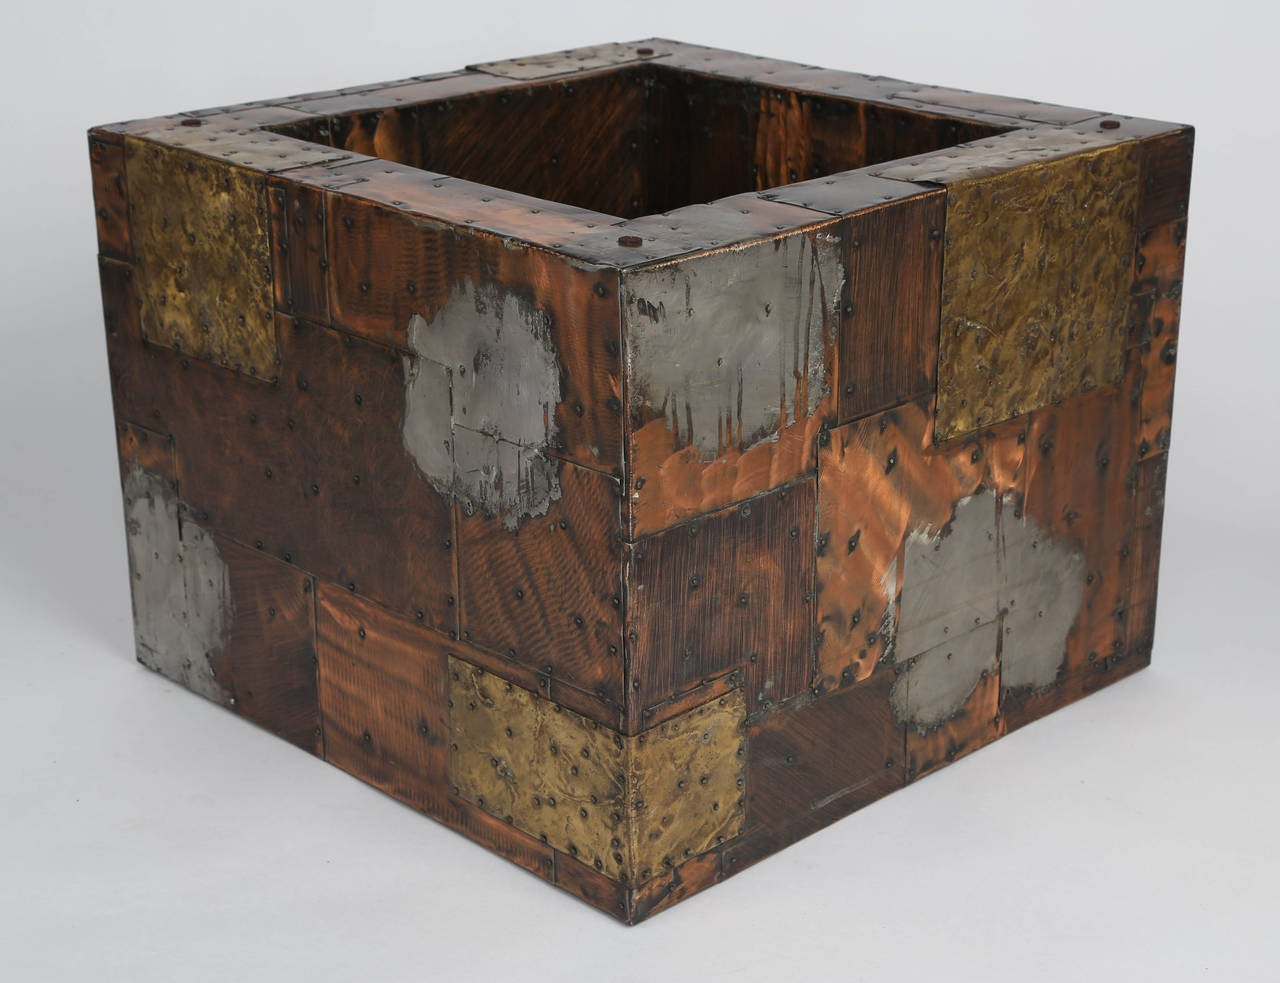 Patinated Paul Evans Pewter, Brass and Copper Patchwork Cocktail Table, circa 1970s For Sale